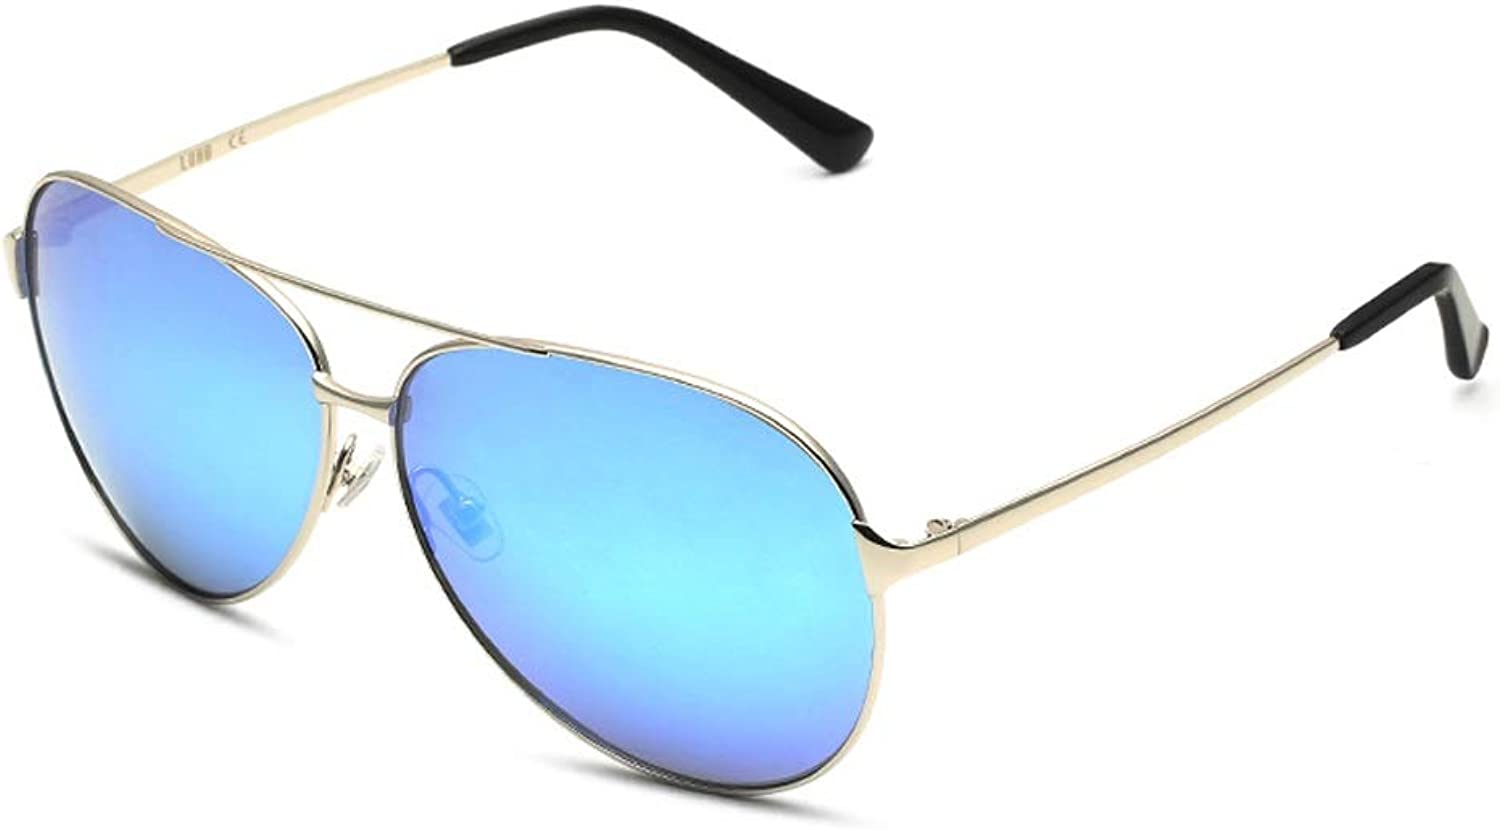 LFFTYJ Sunglasses, Sunglasses, Men's Glasses, Sunglasses, Polarized Trend, Beautiful Curved Unisex Give him (her) a Good Summer Gift (color   A)